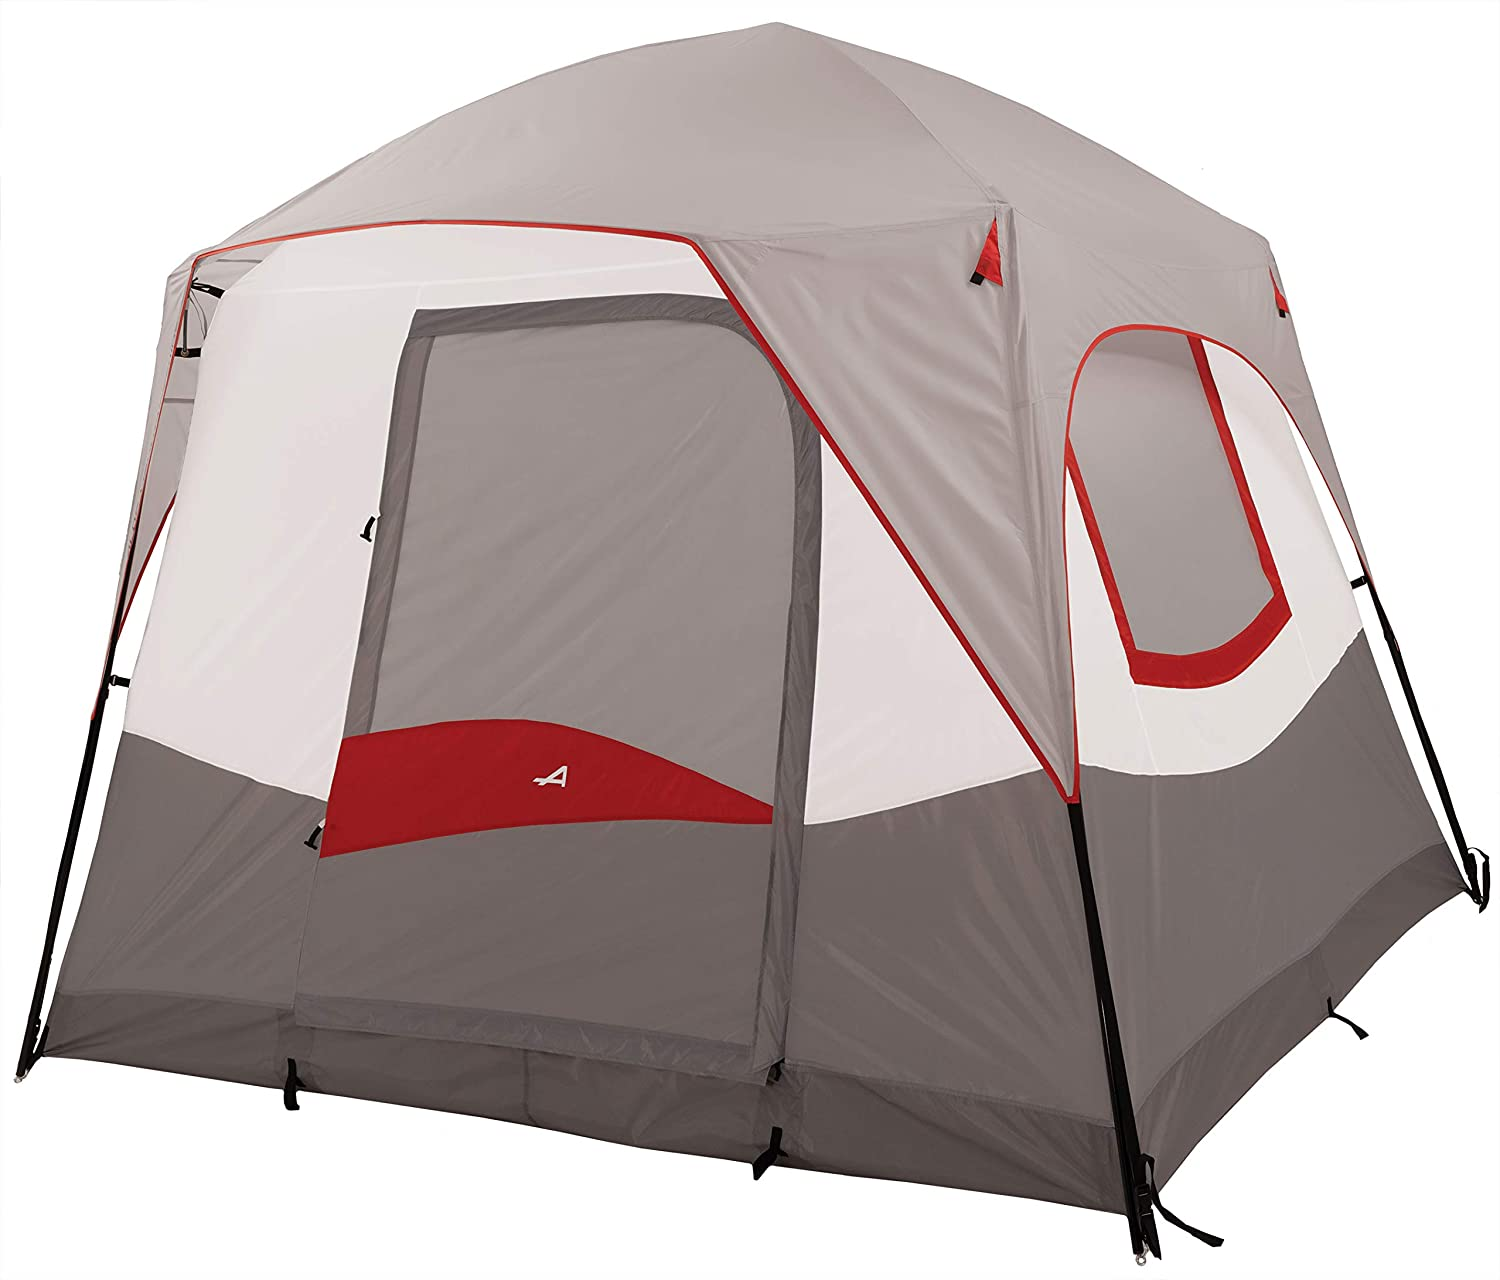 ALPS Mountaineering Camp Creek 6-Person Tent image - tent for tall people